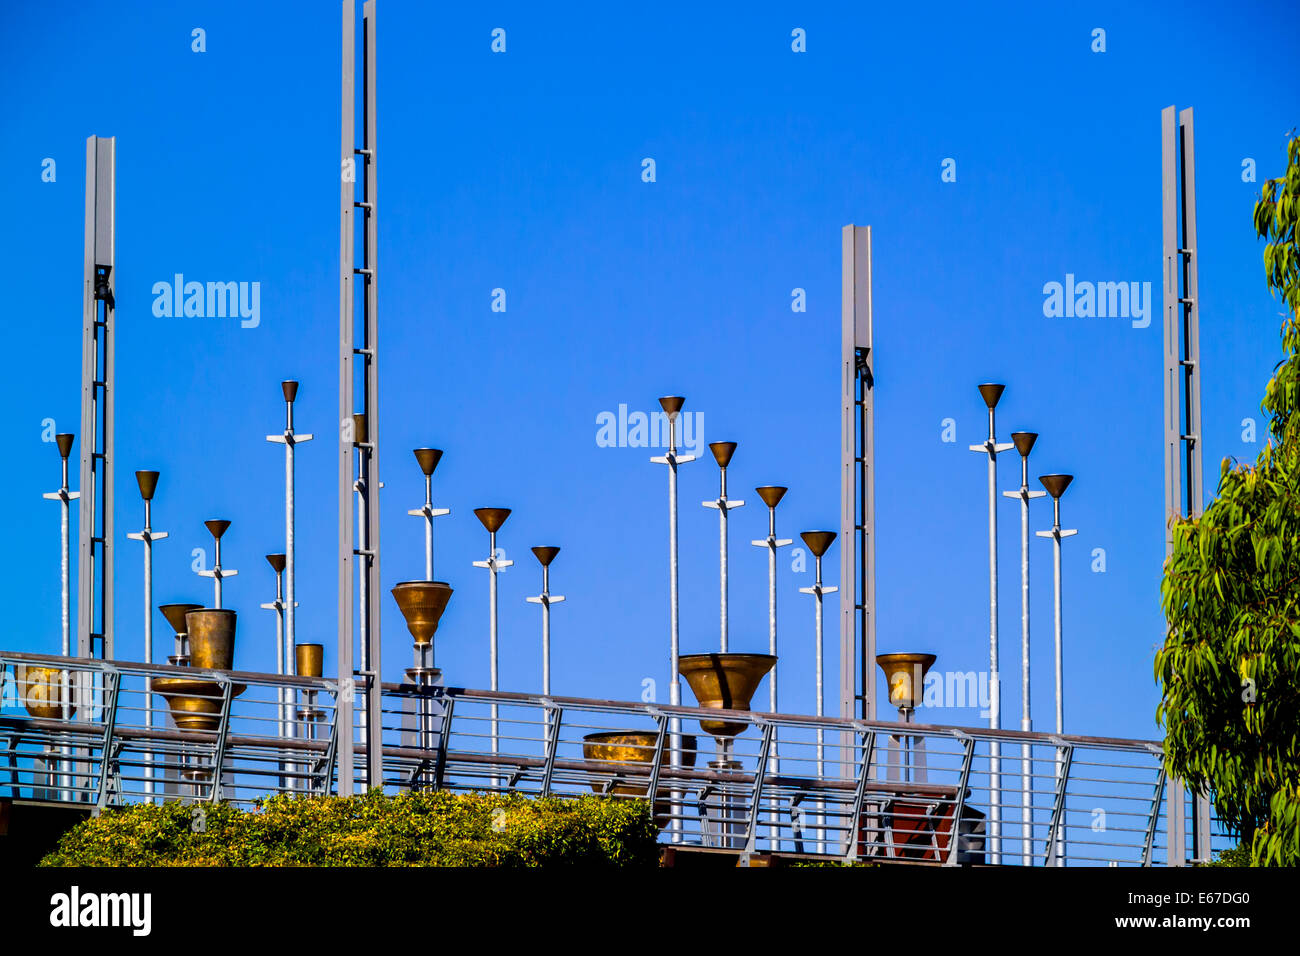 Federation Bells Bronze-alloy bells on galvanised-steel poles, 2002 public art installation, Melbourne, Australia - Stock Image